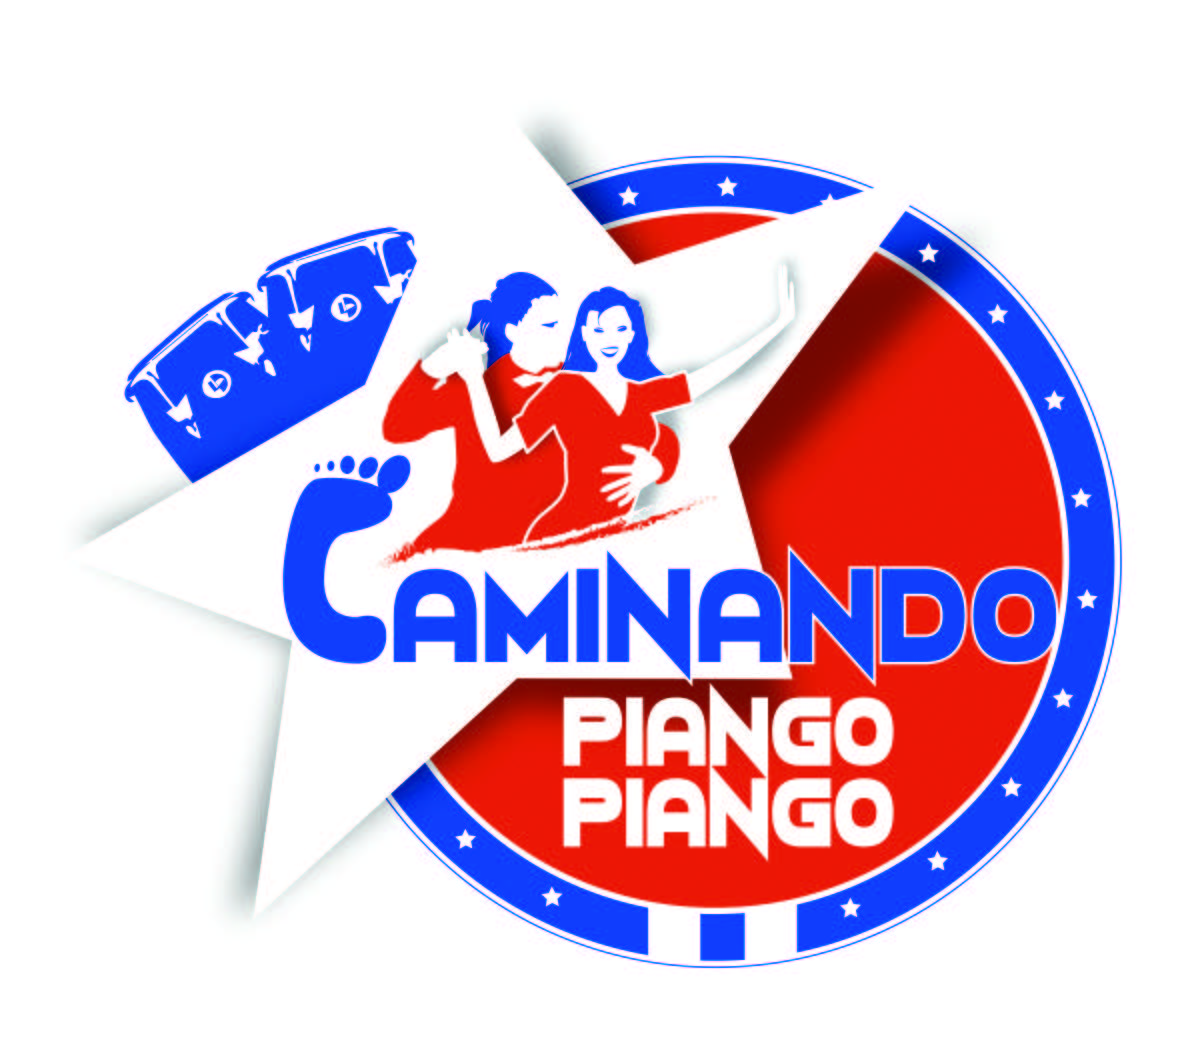 Logo de l'association Caminando piango-piango